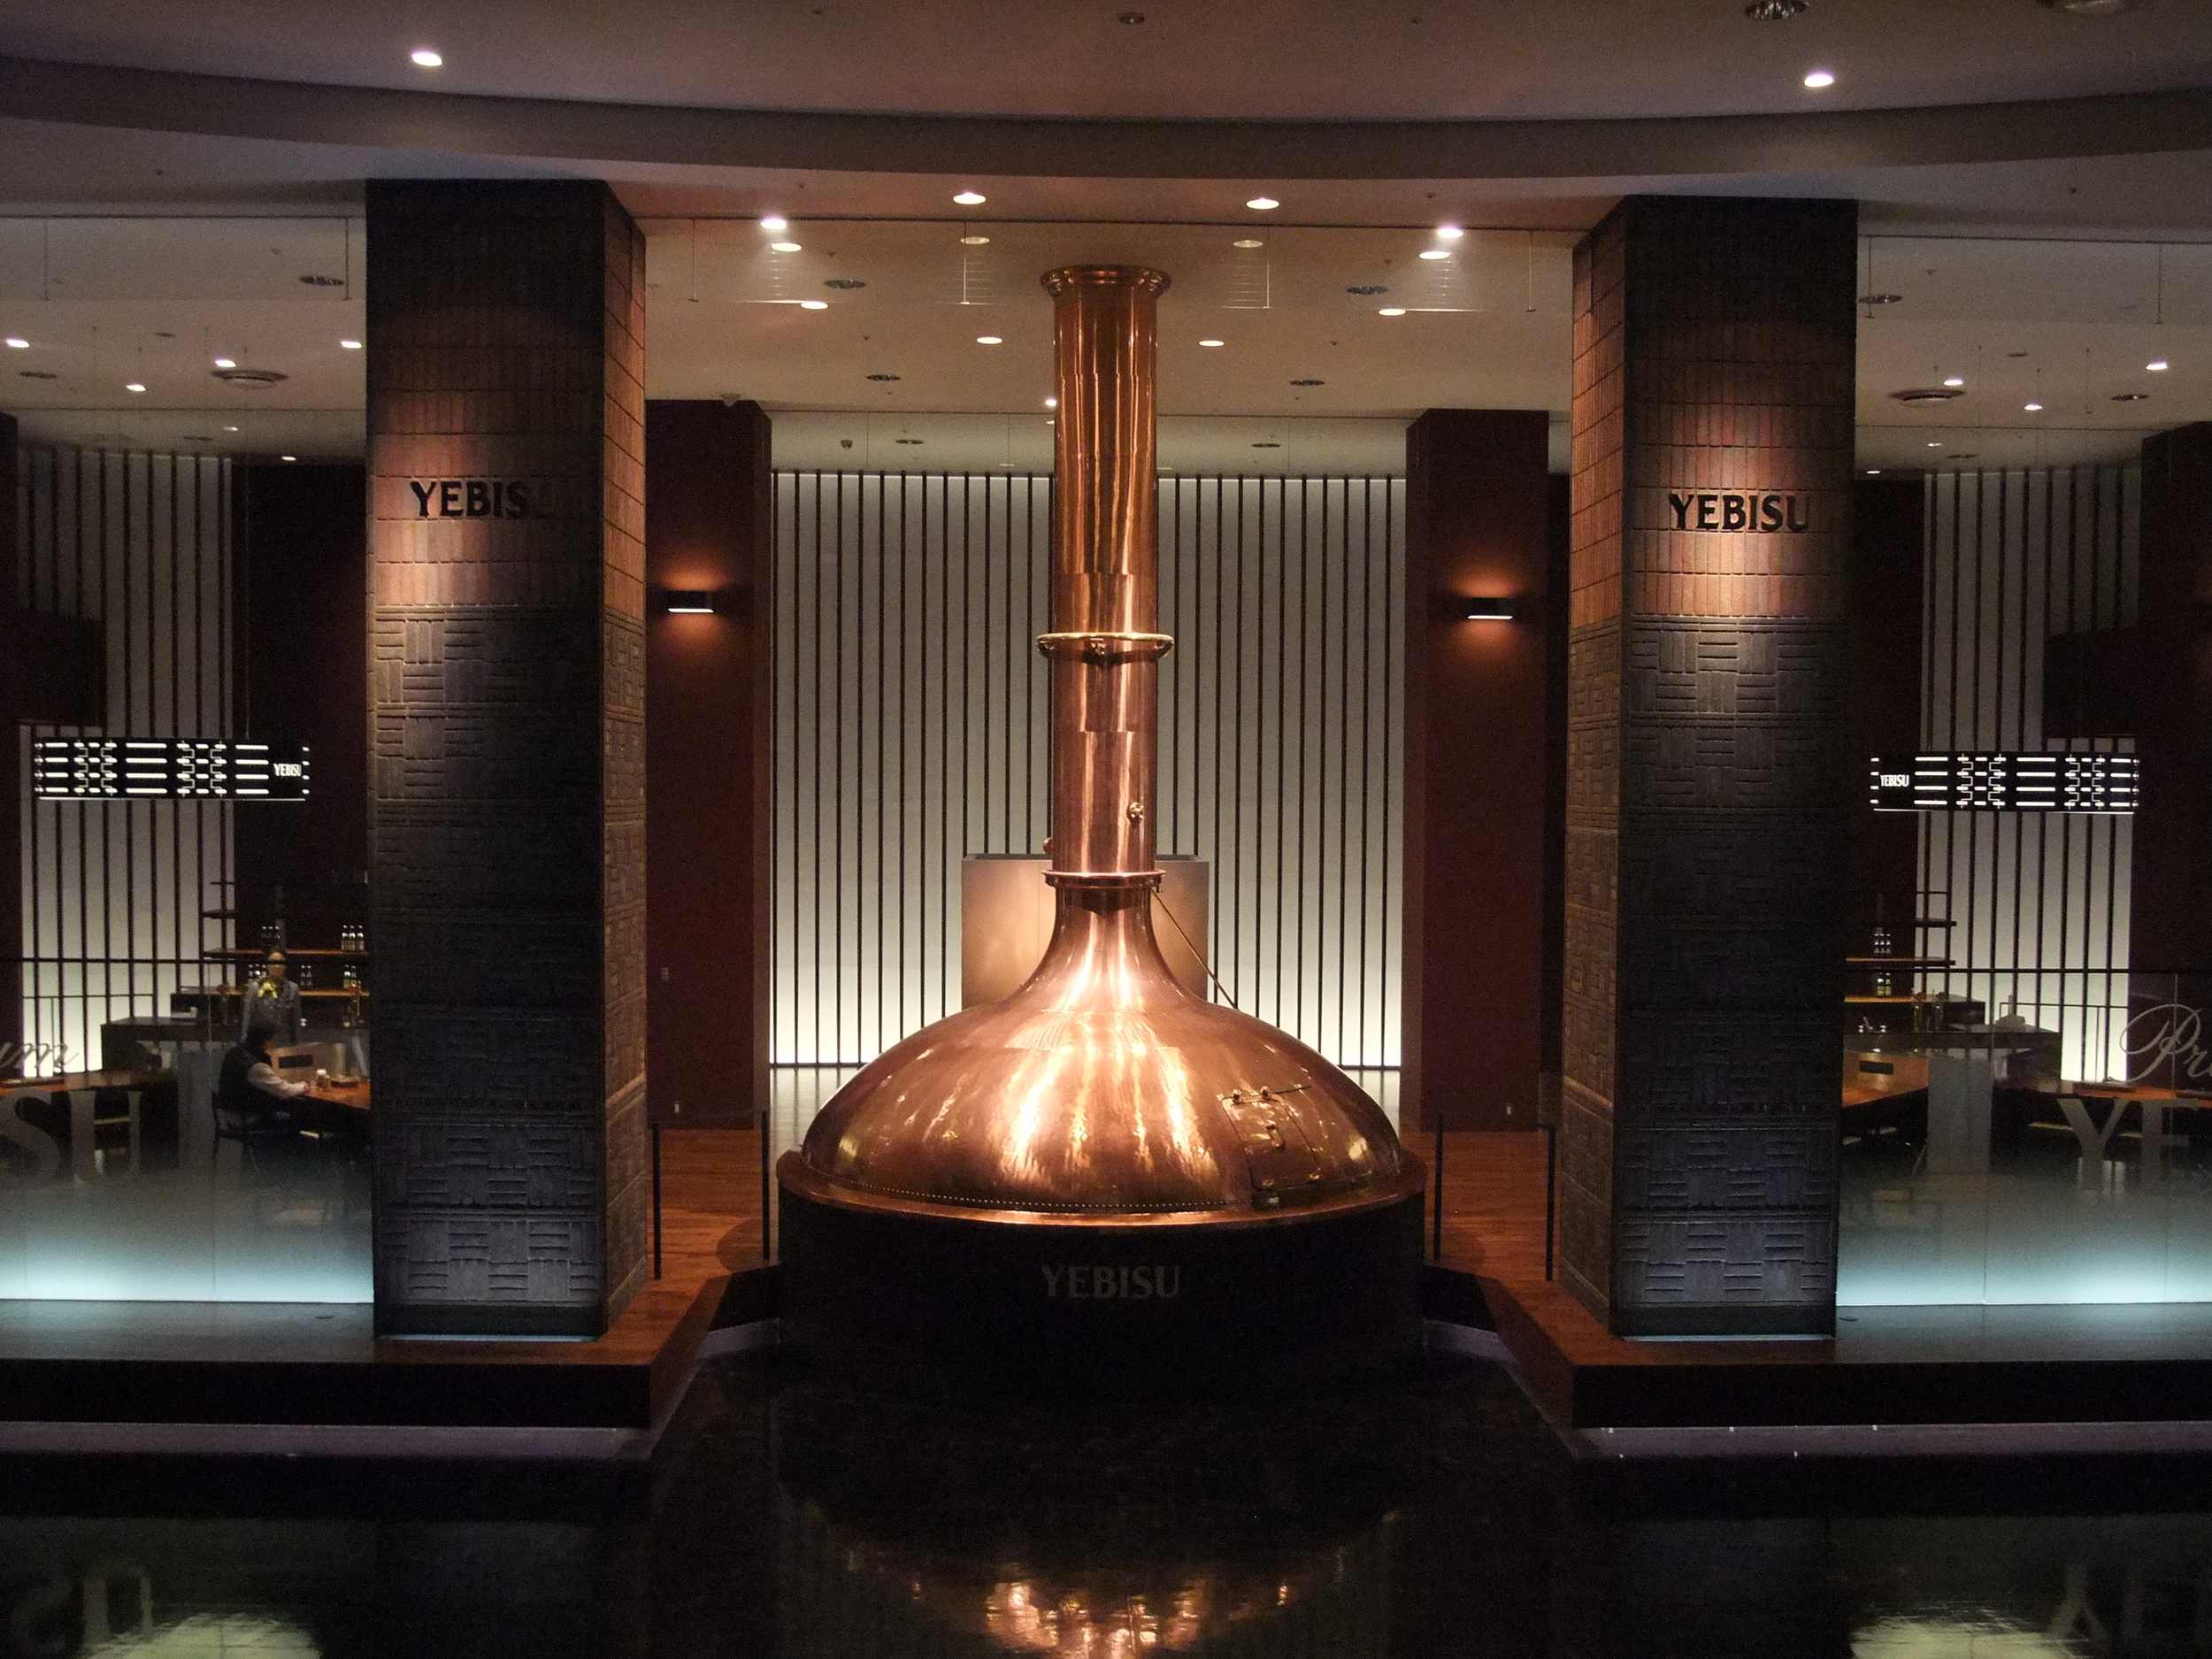 The large copper boiler inside the museum